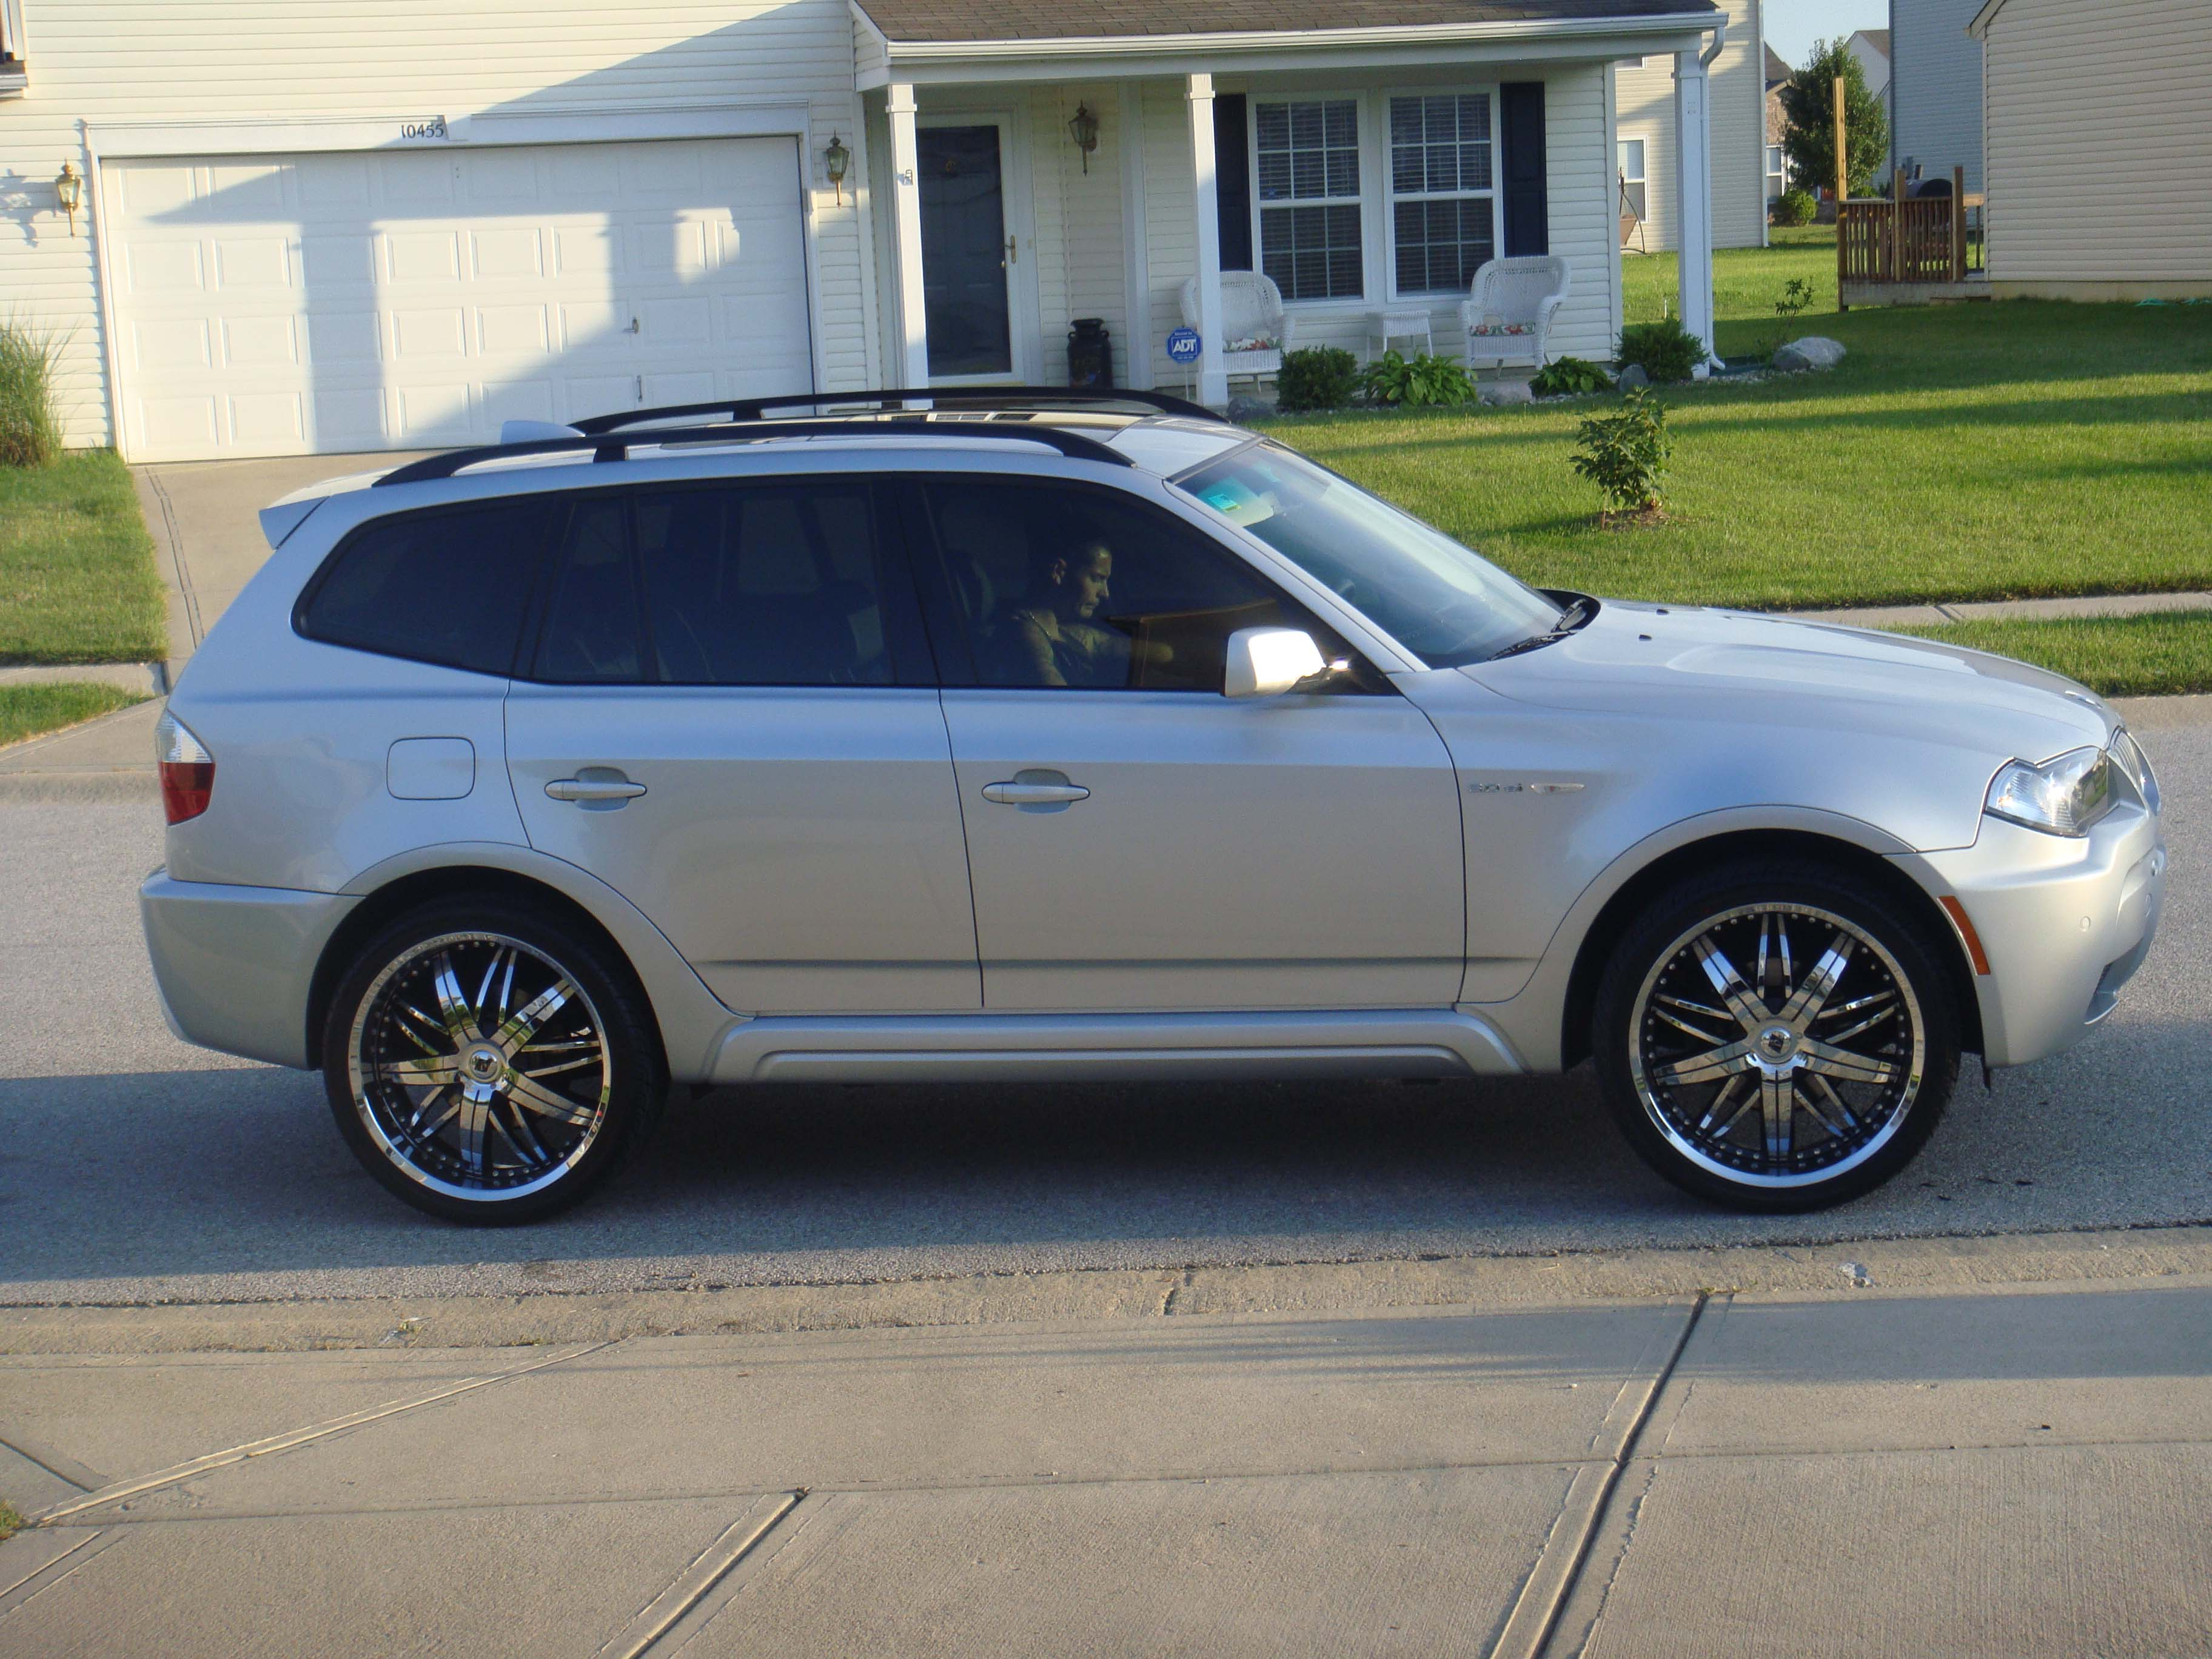 X3 wheel choices: 18's, 19's or 20's?-side22s.jpg